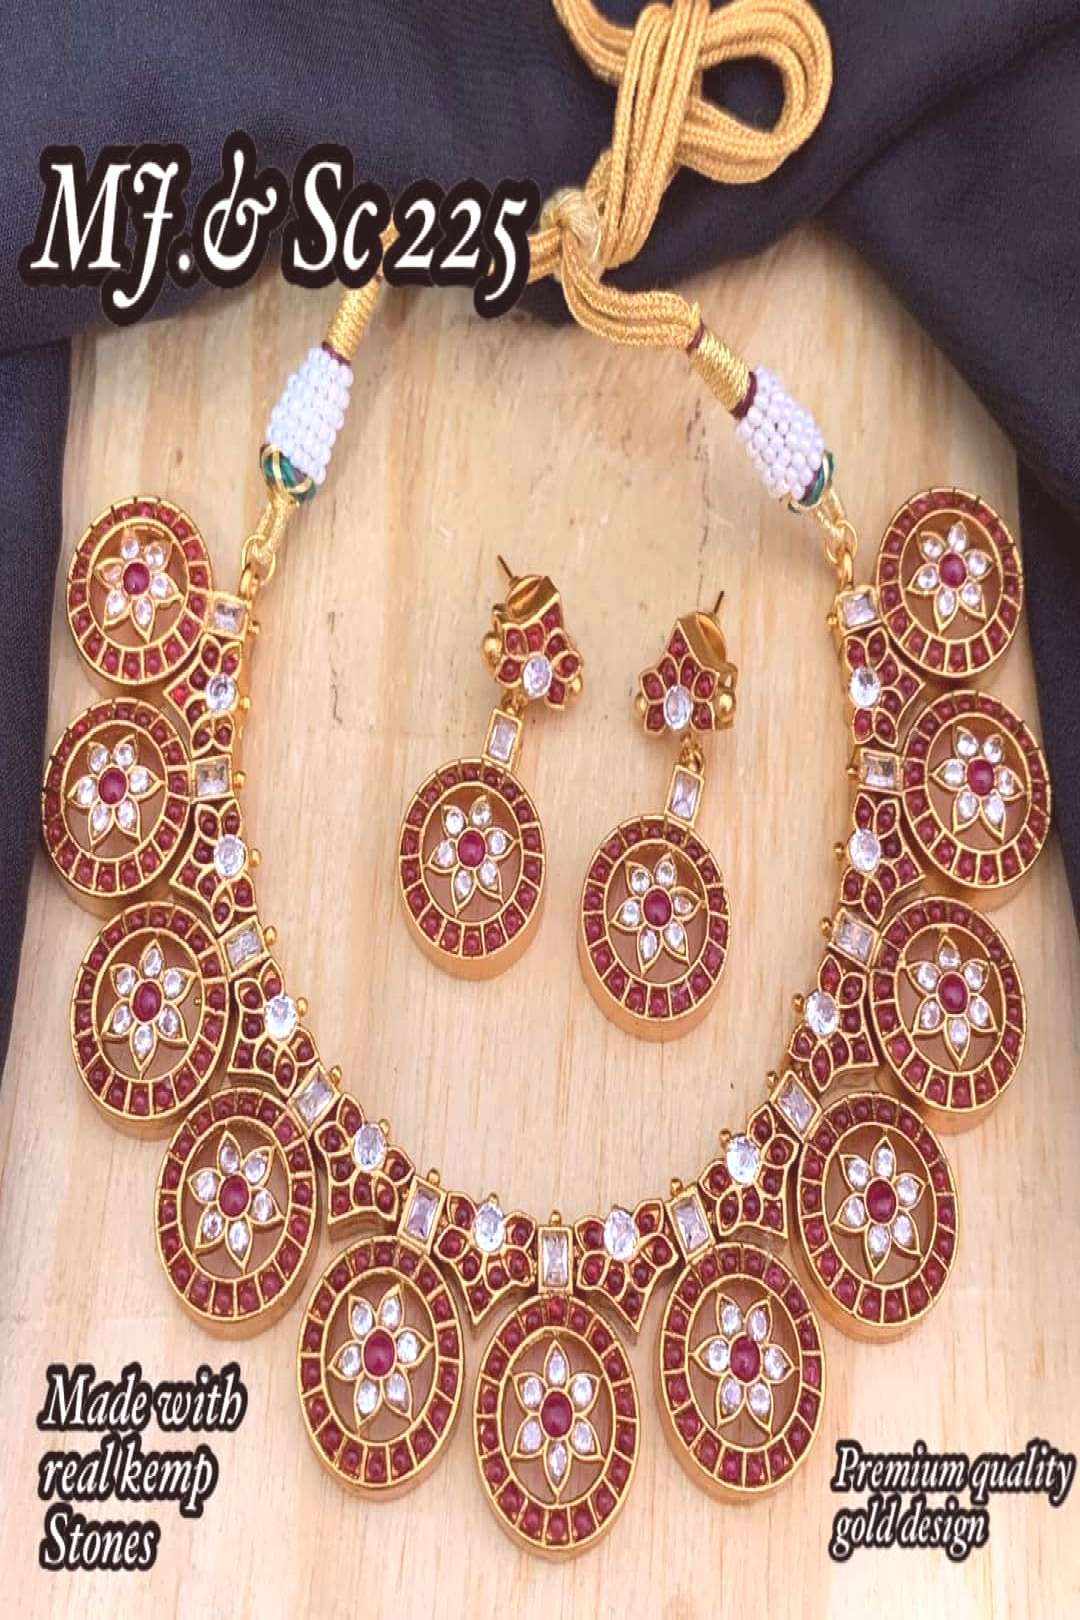 SK Bridal Jewellery JSV on June 10 2020